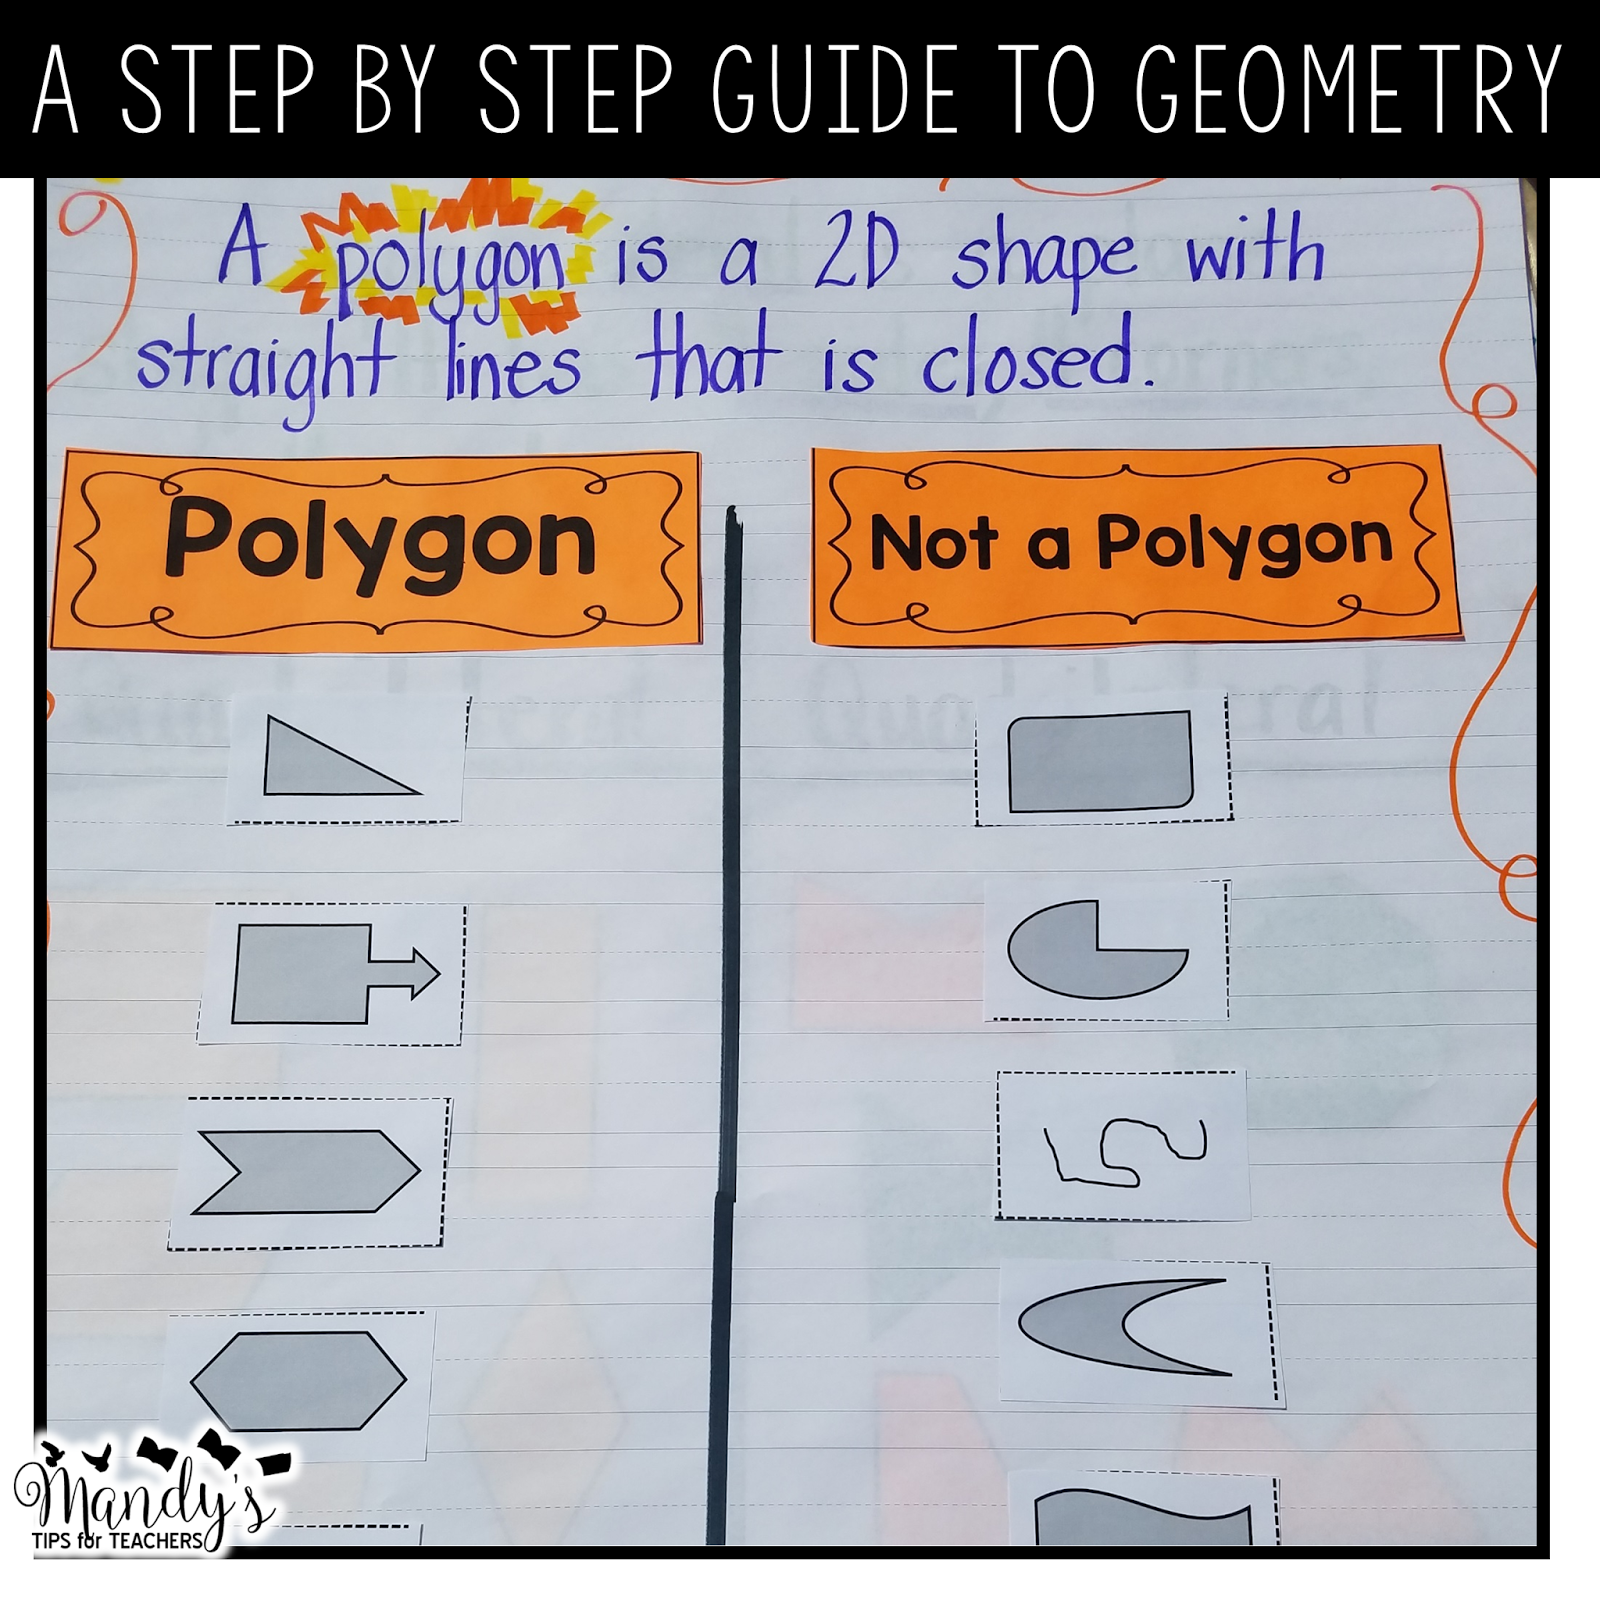 I Have to Teach Geometry...Now What? - Mandy\'s Tips for Teachers